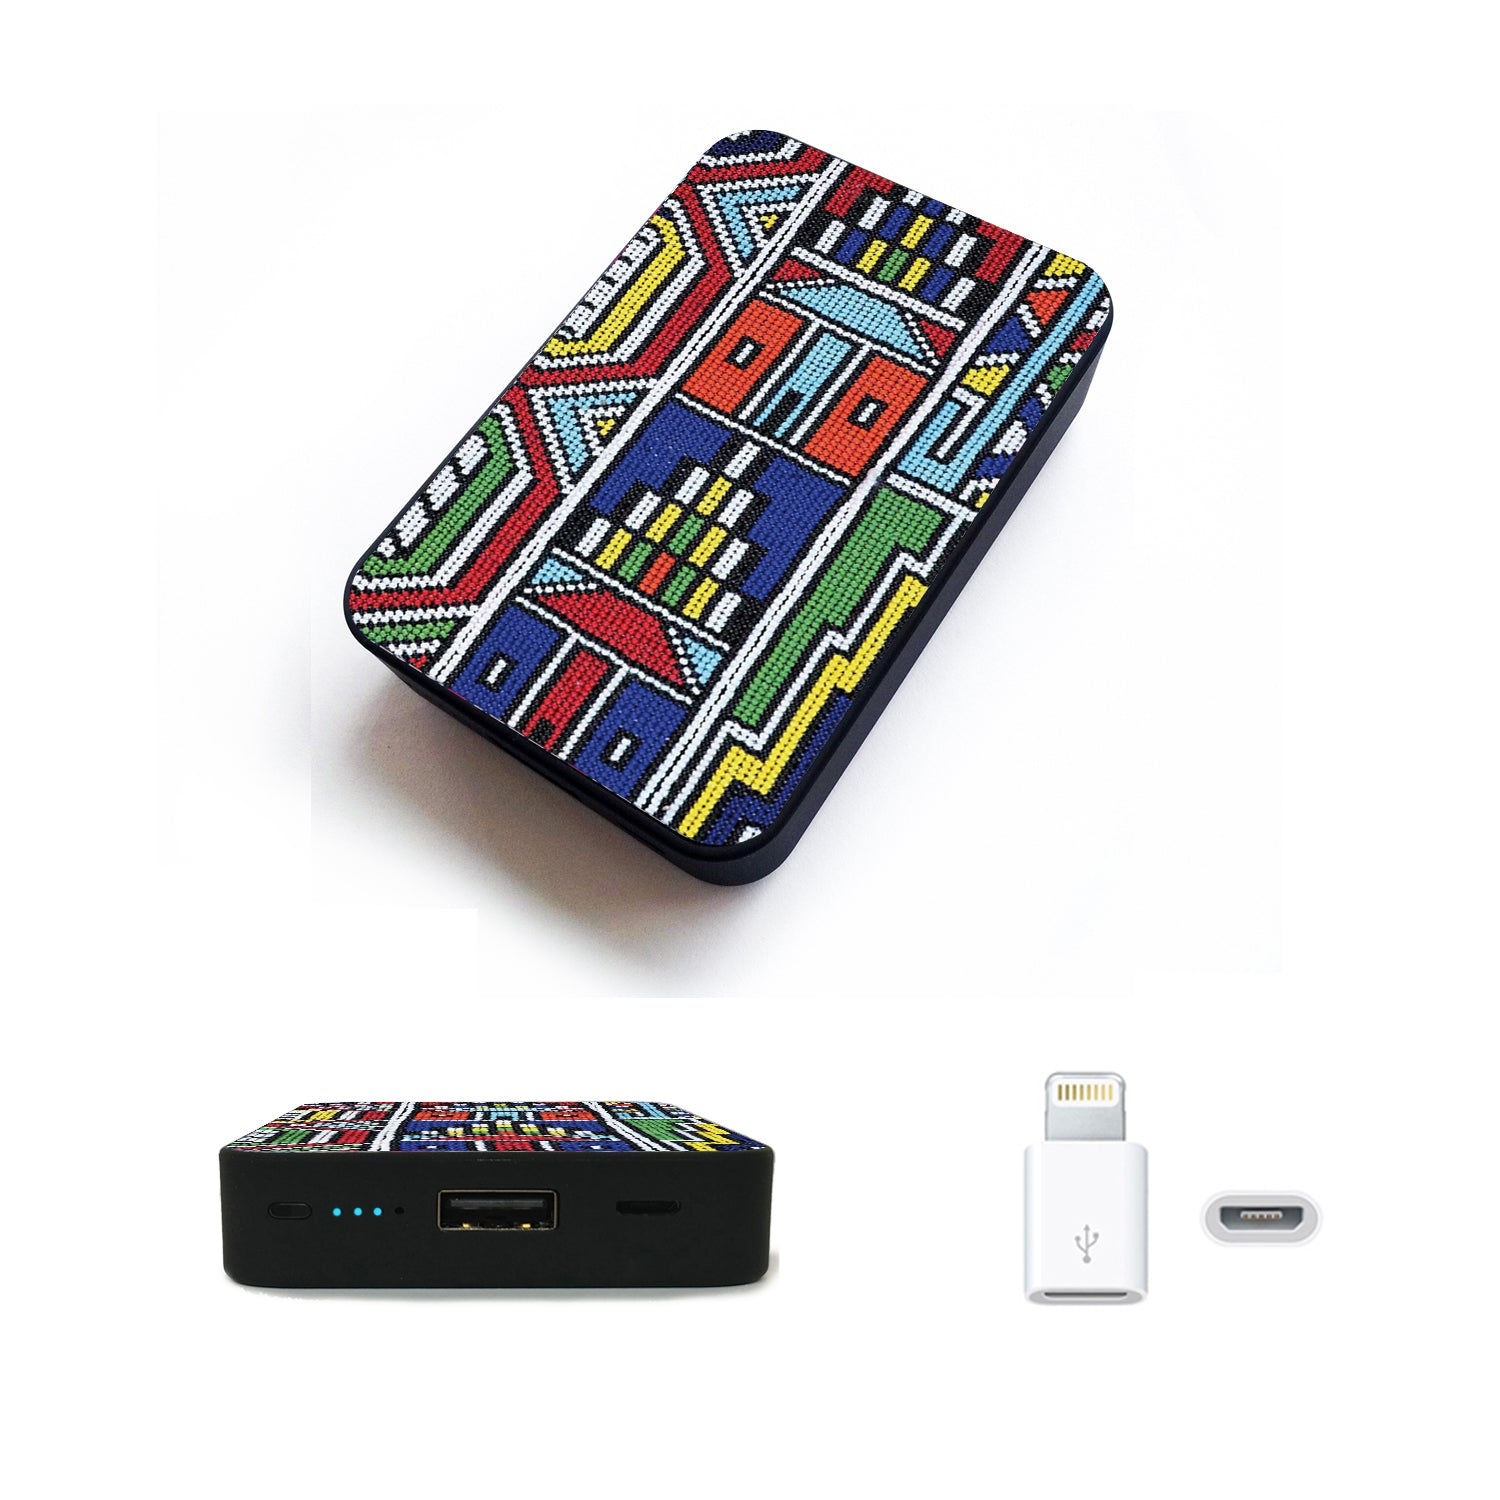 World's Smallest 10,000 mAh Power Bank - CHJGD Ultracompact (Afro Print) - CHARGEDPOWER.COM